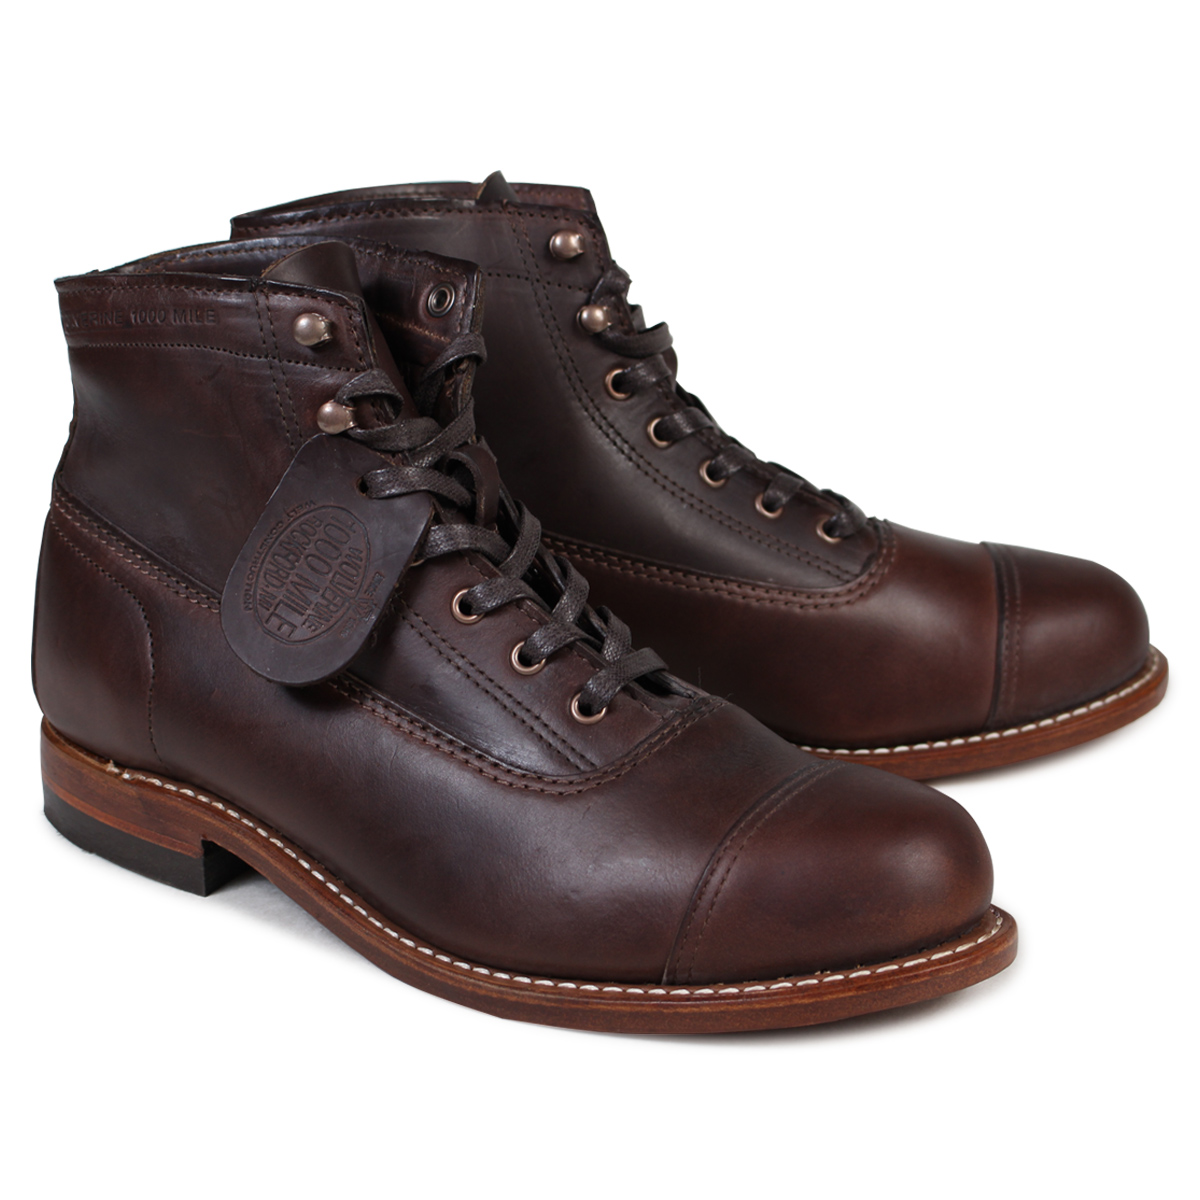 91f4960f312 WOLVERINE Wolverene 1,000 miles boots ROCKFORD 1000 MILE CAP-TOE BOOT D  Wise W05293 brown work boots men [172]